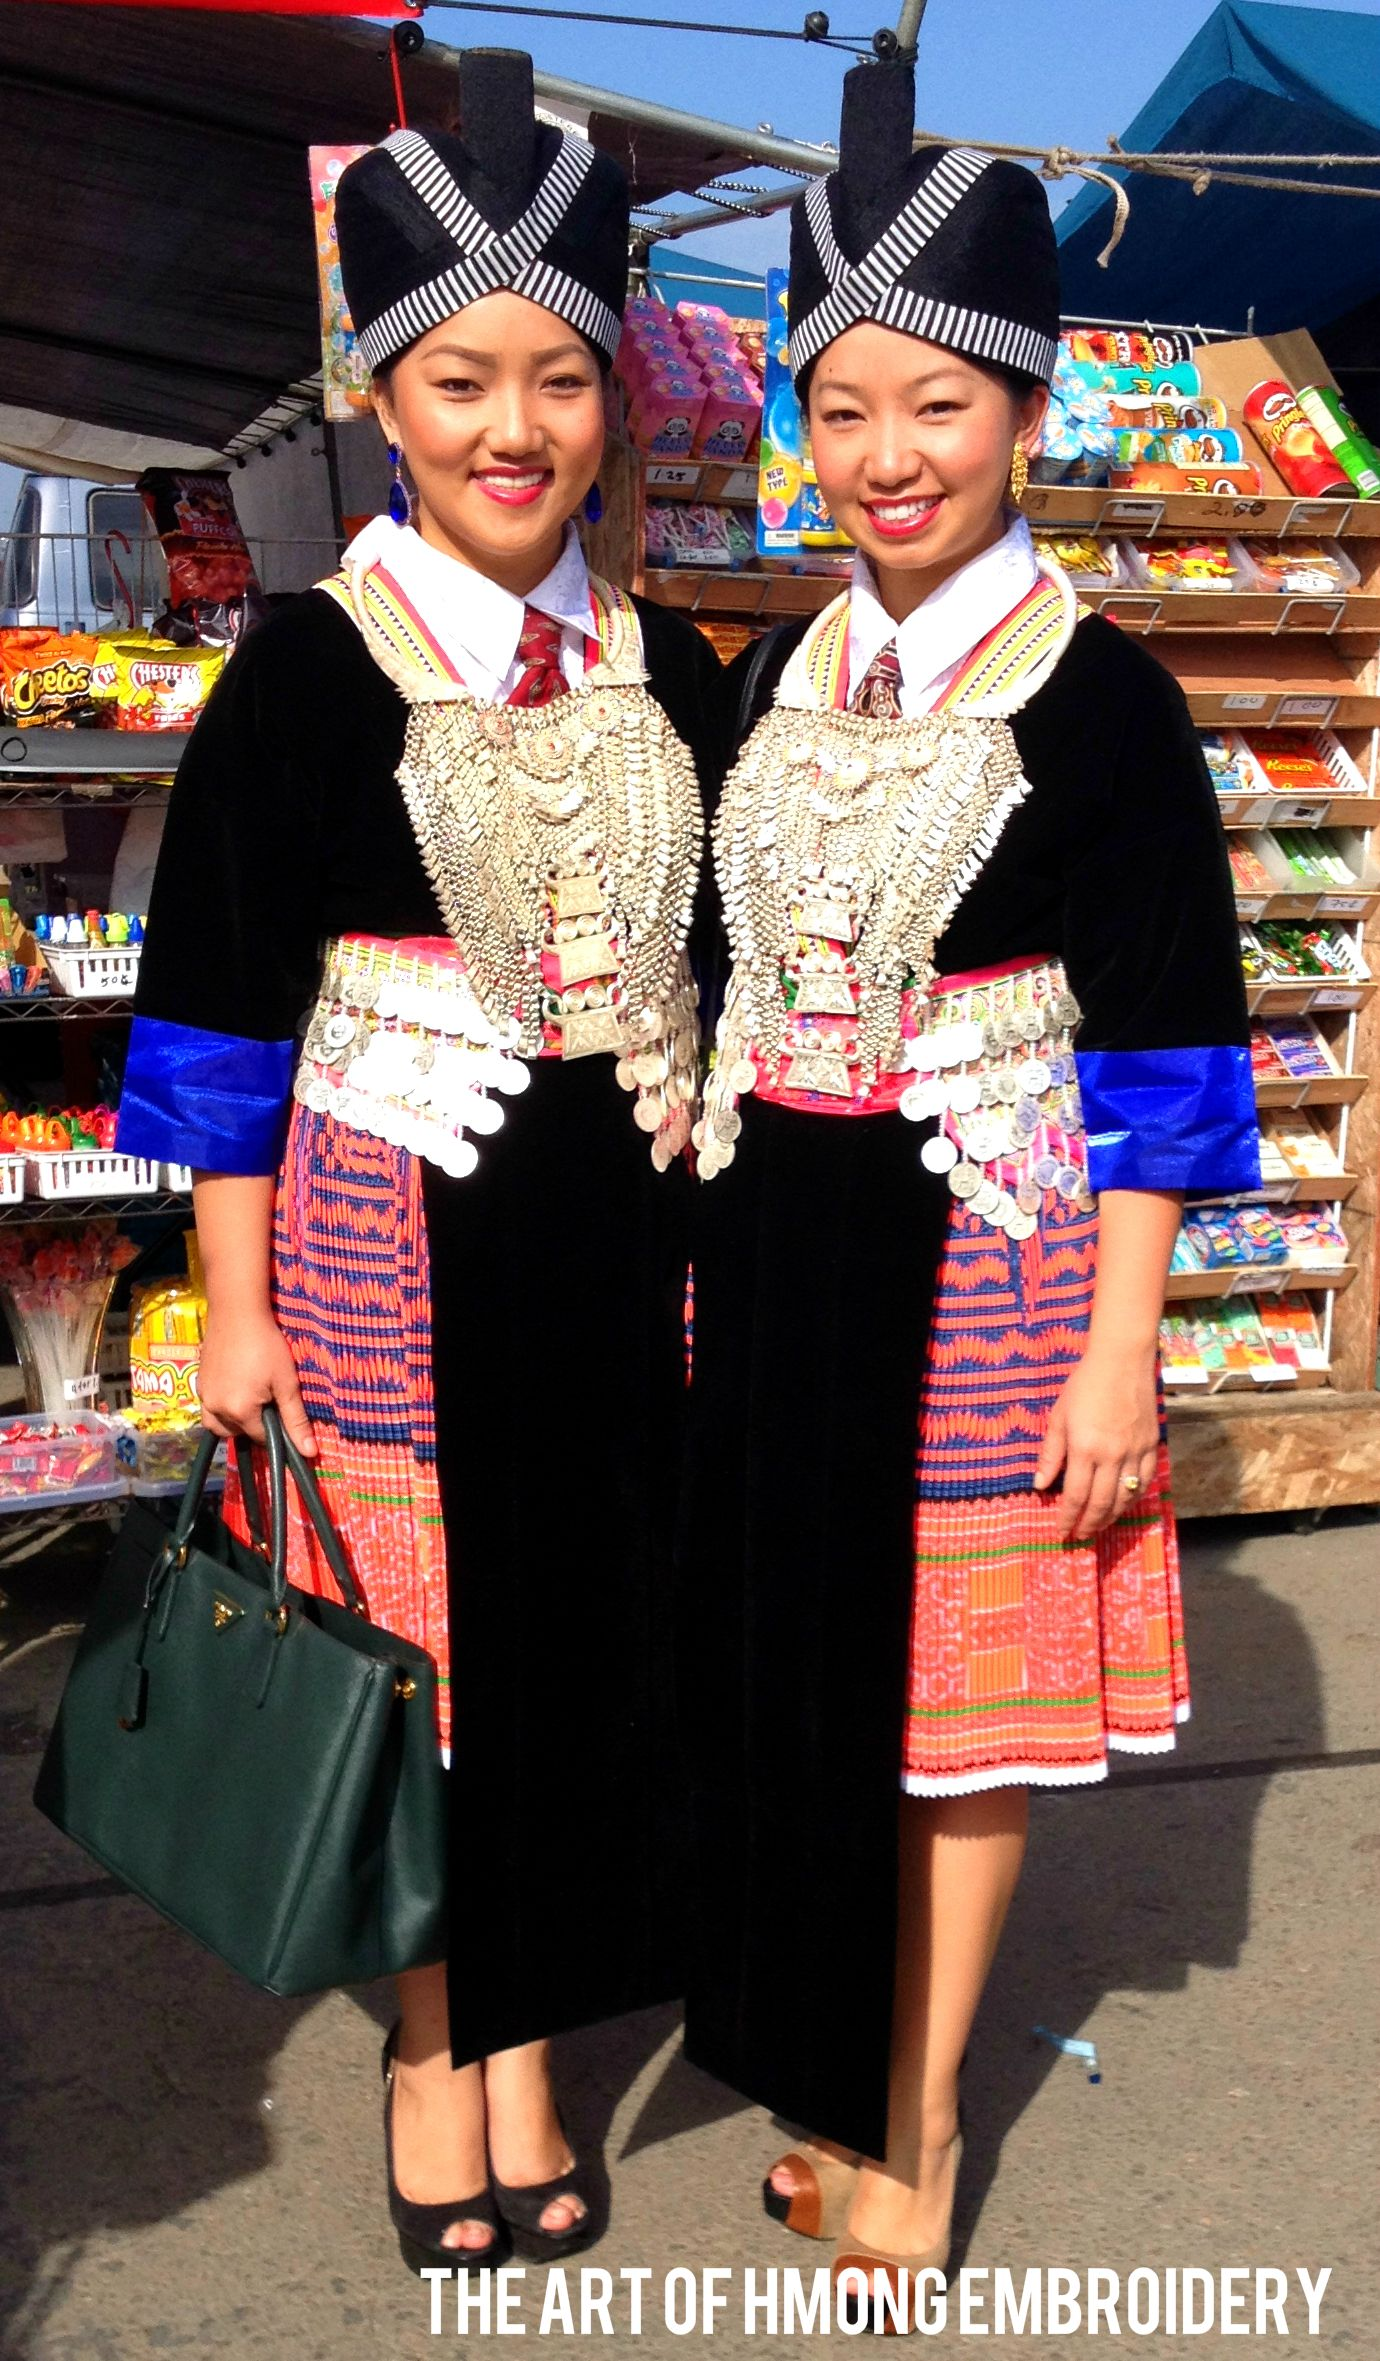 Hmong skirt the art of embroidery my culture